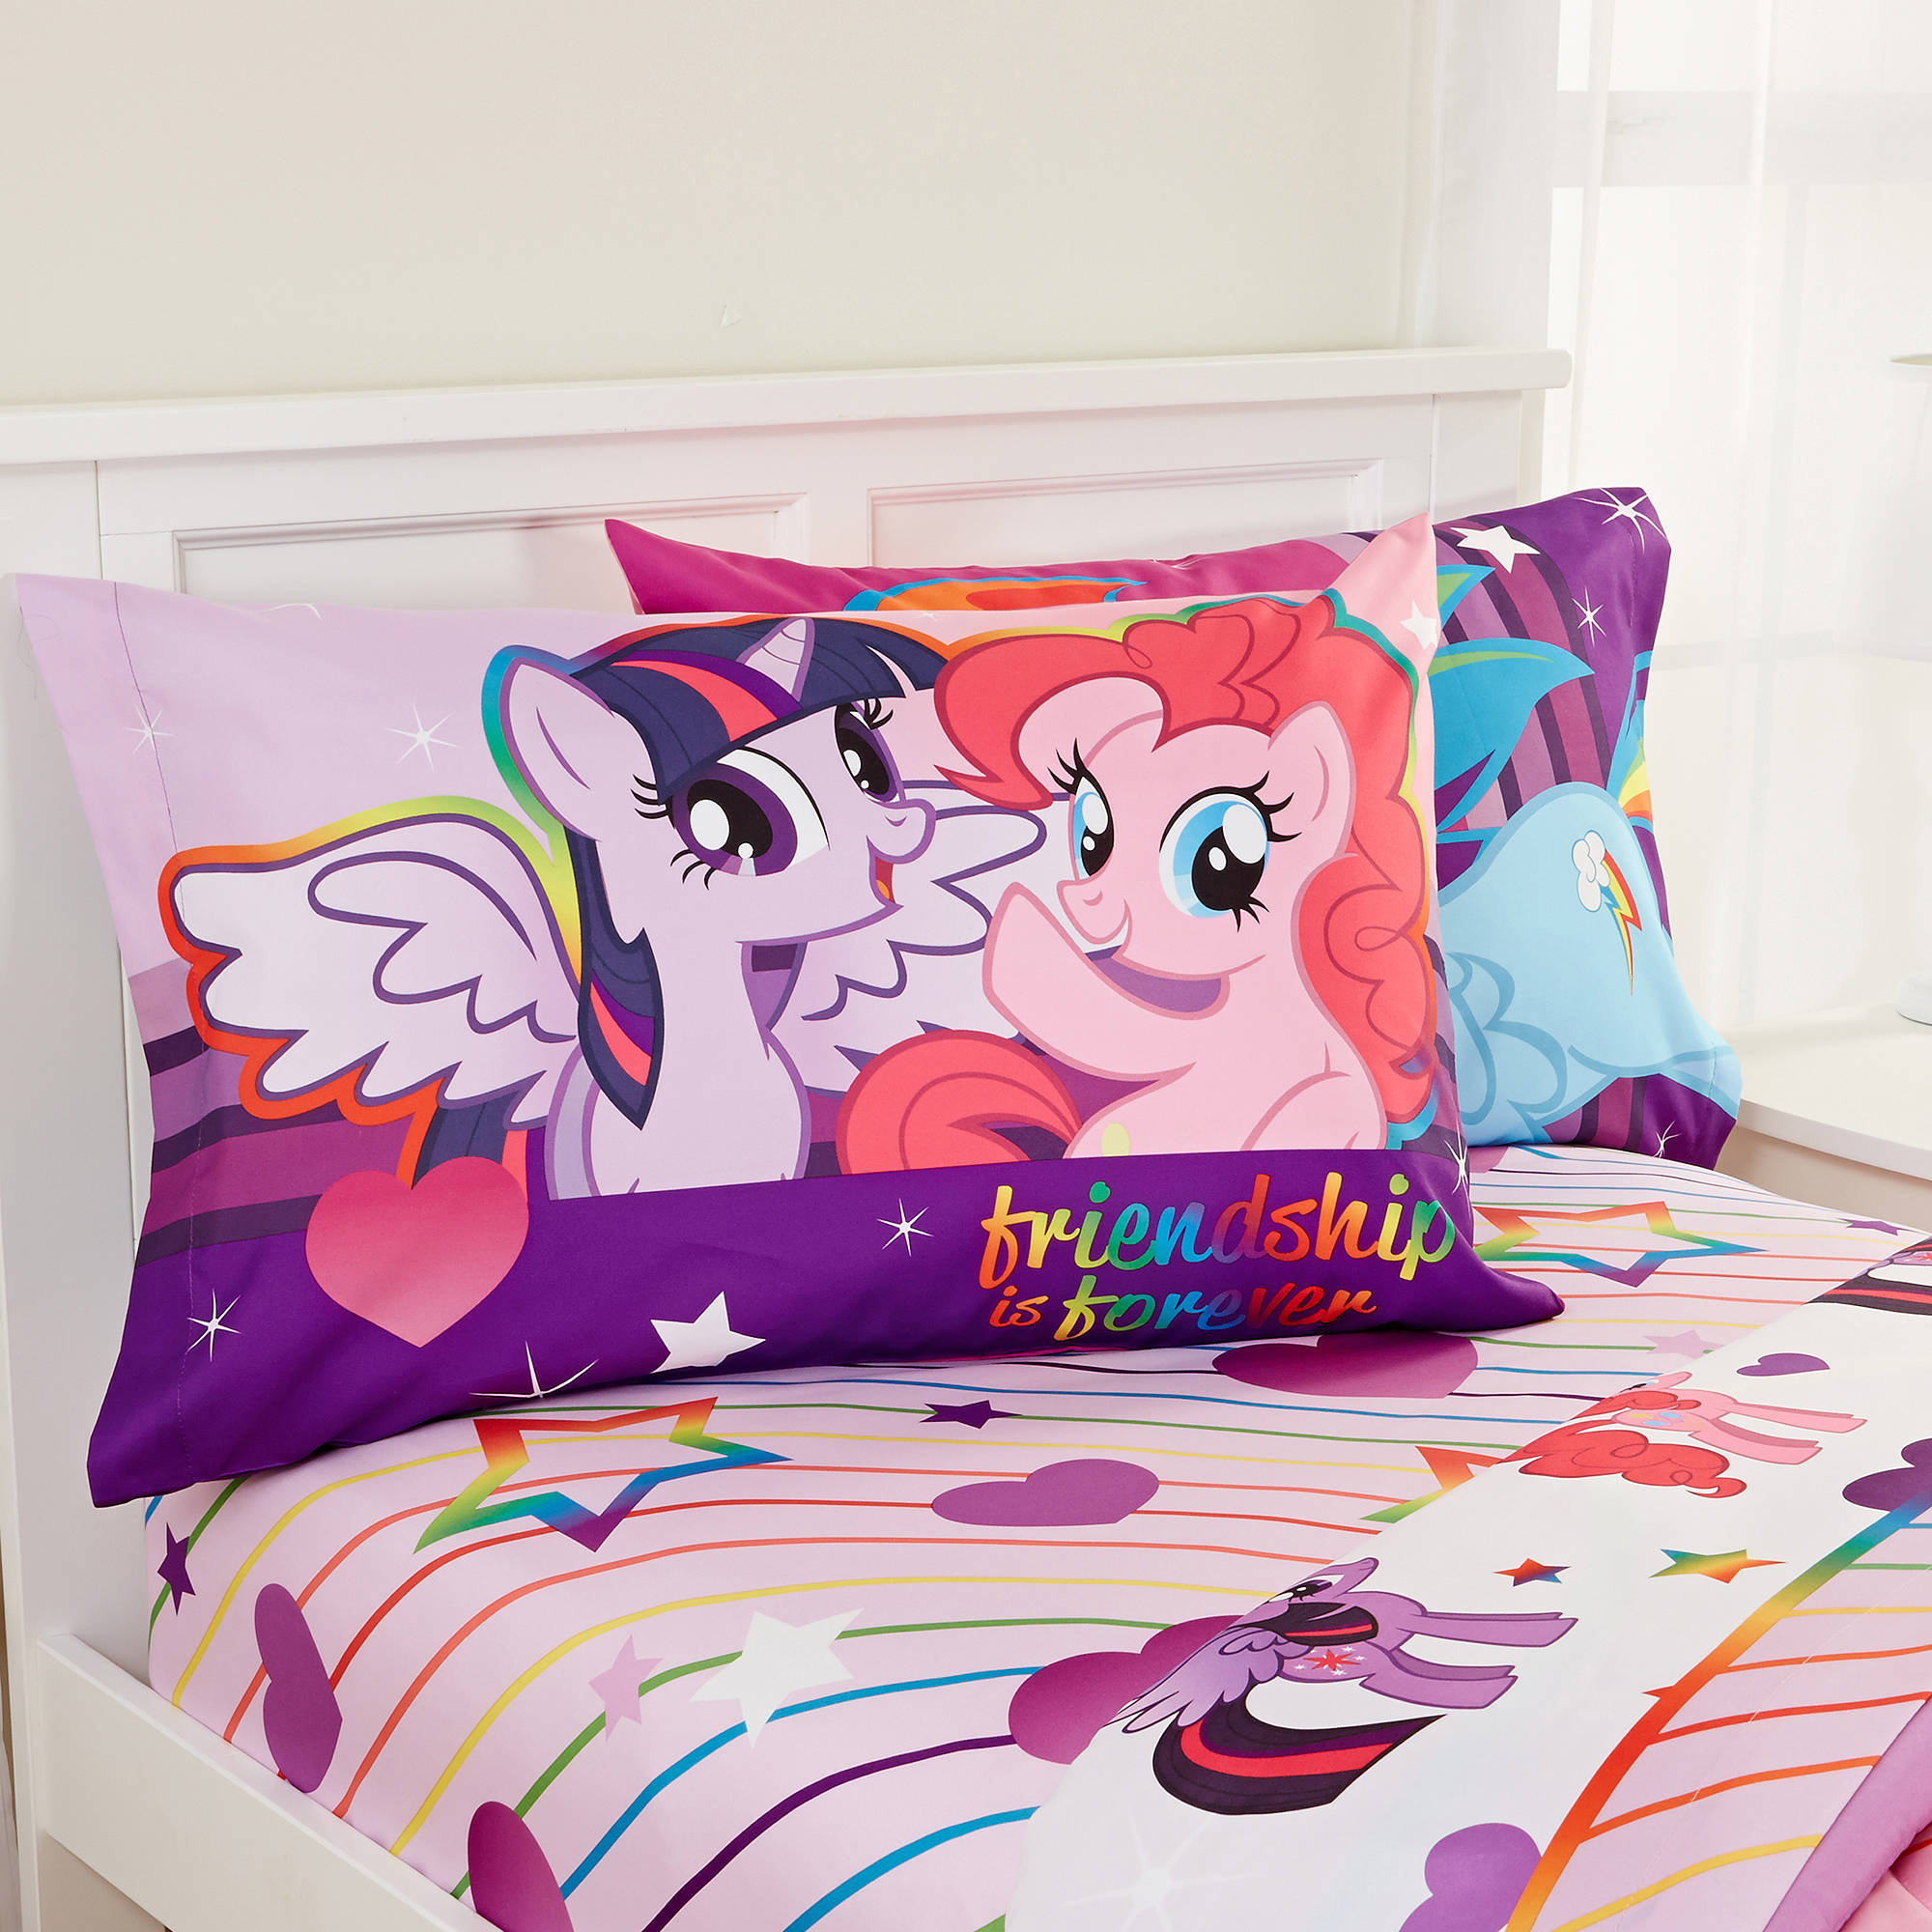 Your Choice Kids Bedding Comforter With Sheet Set Included, Shopkins,  Frozen, Paw Patrol, Peppa Pig And More!   Walmart.com